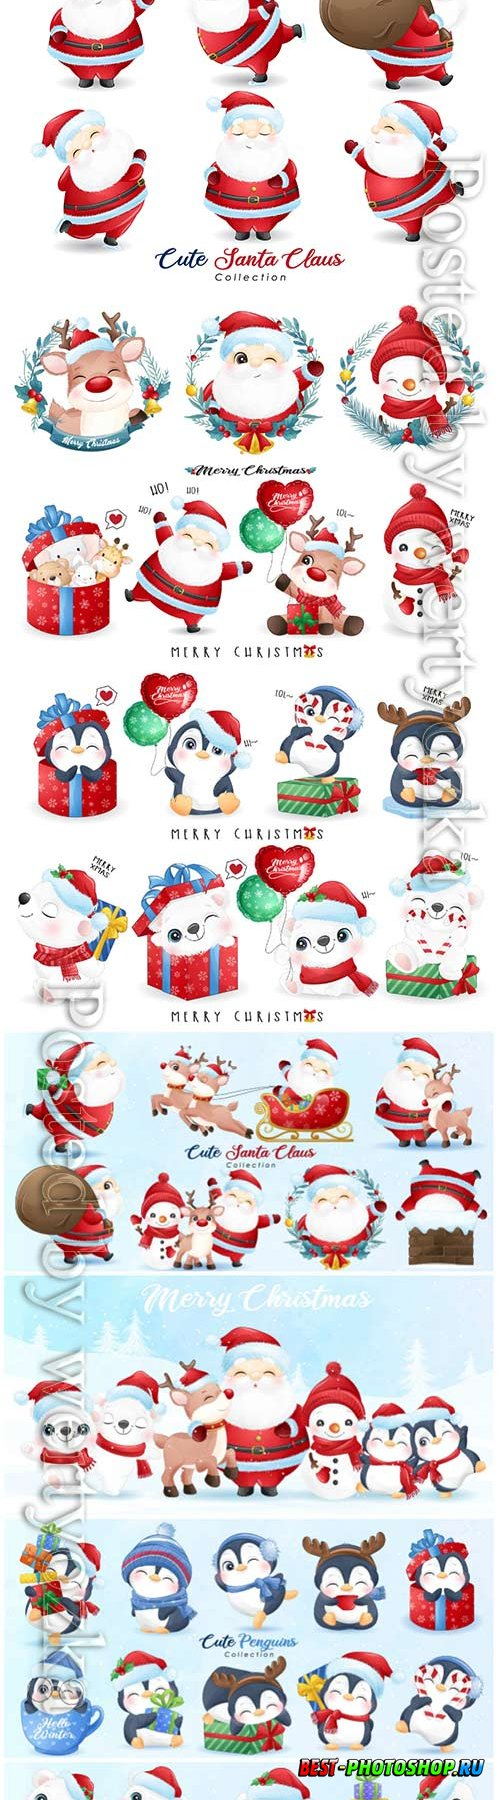 Cute santa claus and friends for christmas day with watercolor vector illustration